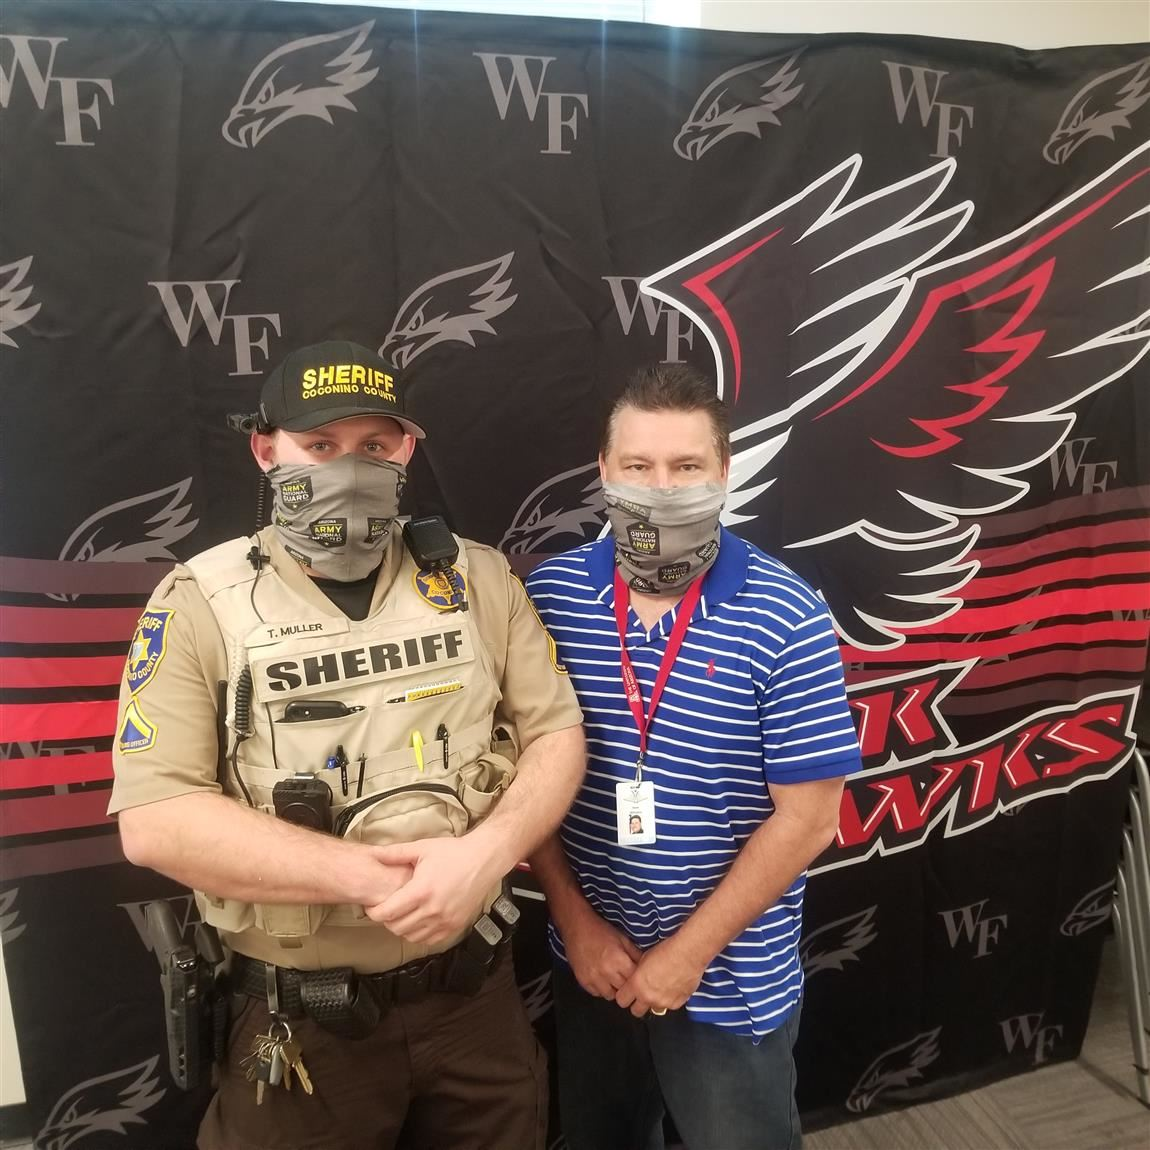 Tyler Muller in uniform and Mr. Williams standing together at Williams Field High School